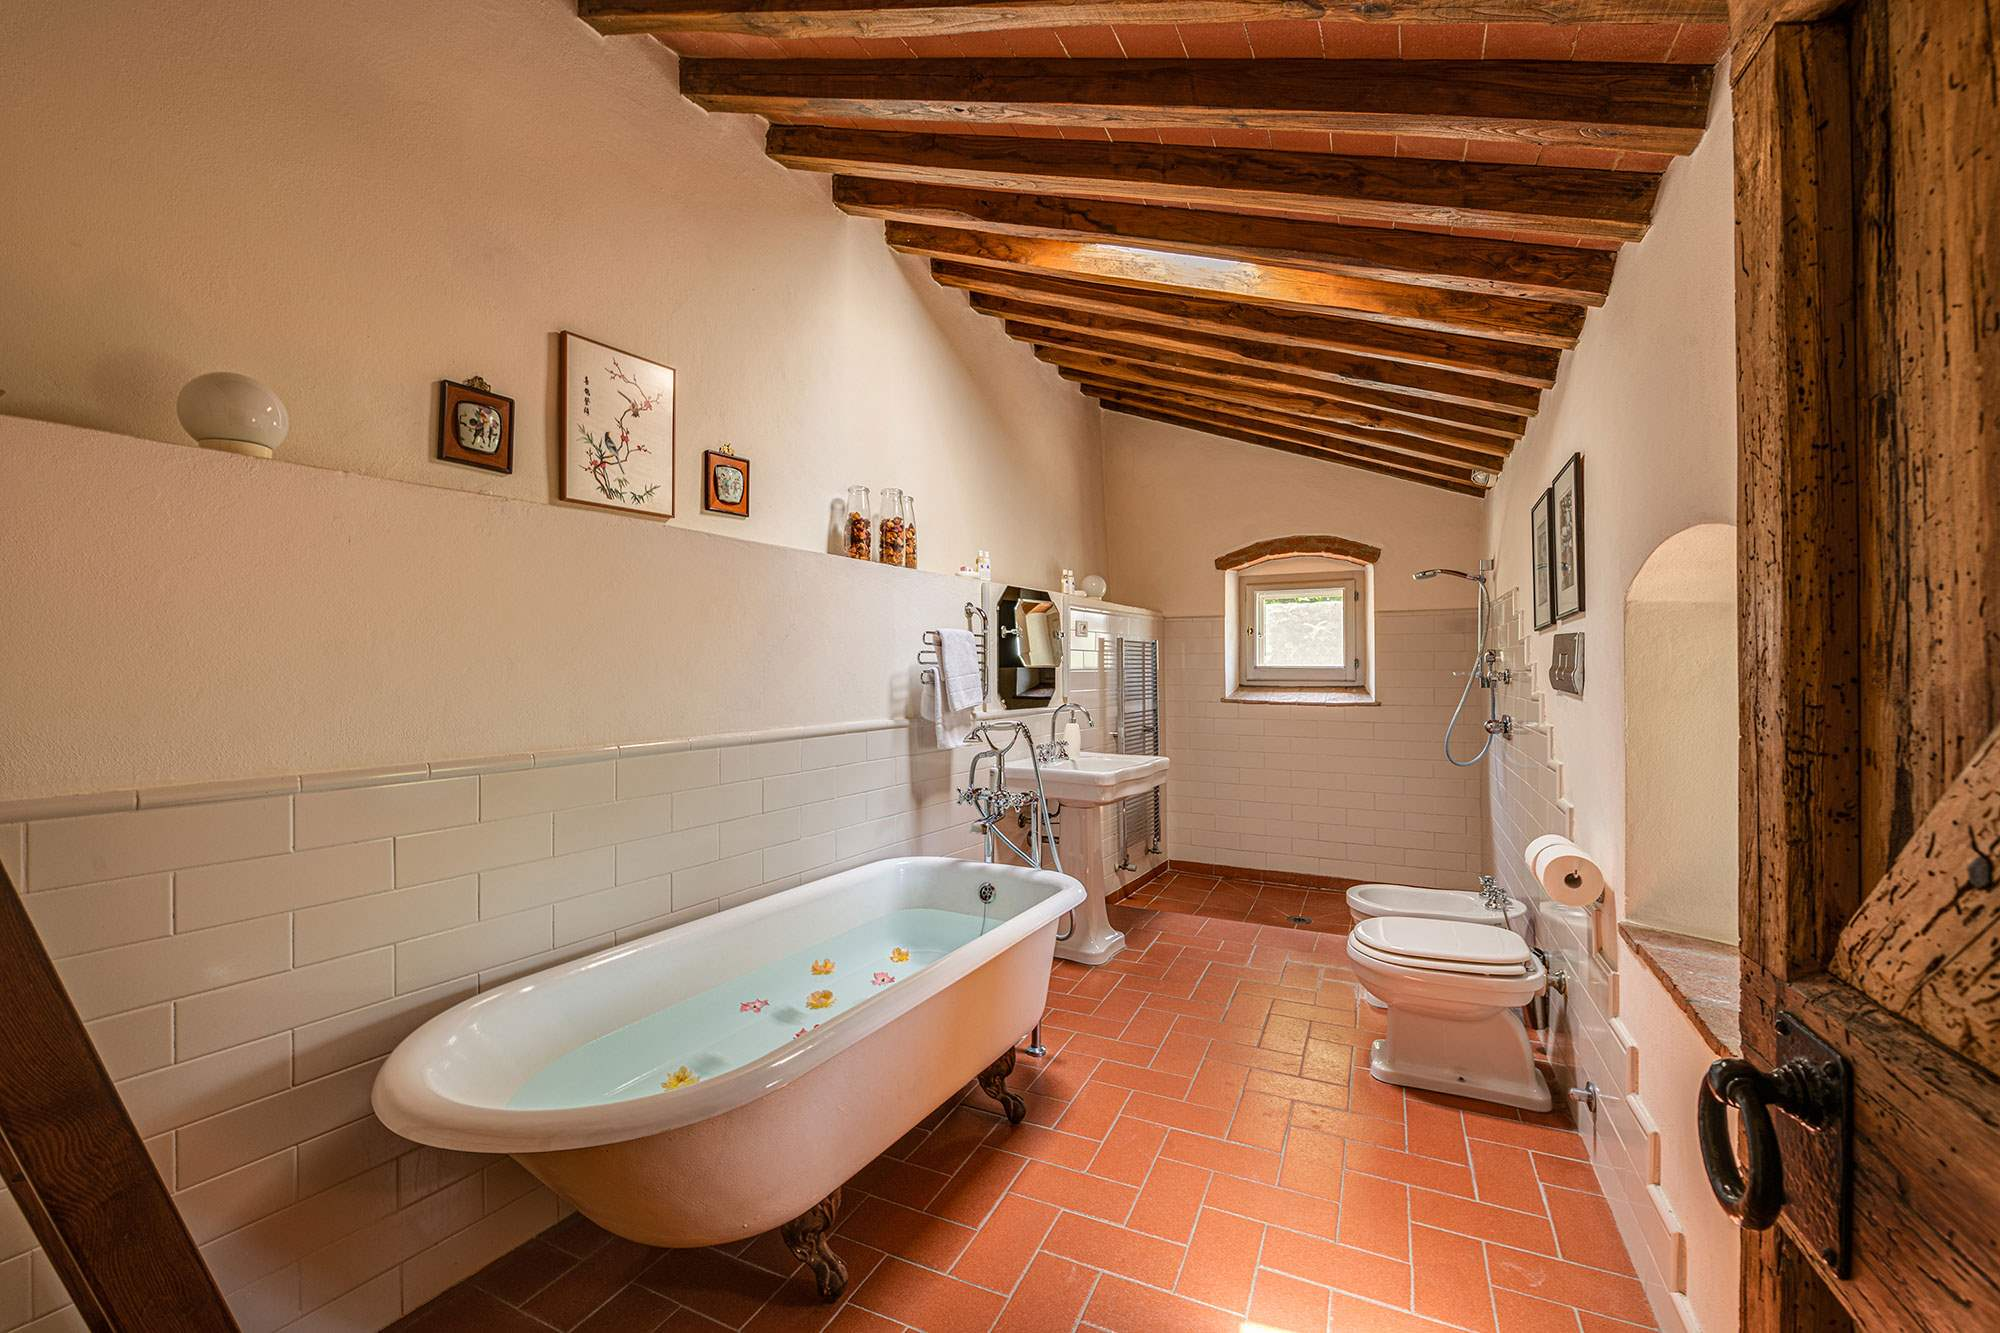 Villa Claudia, 6 Bedroom rate, 6 bedroom villa in Chianti & Countryside, Tuscany Photo #18